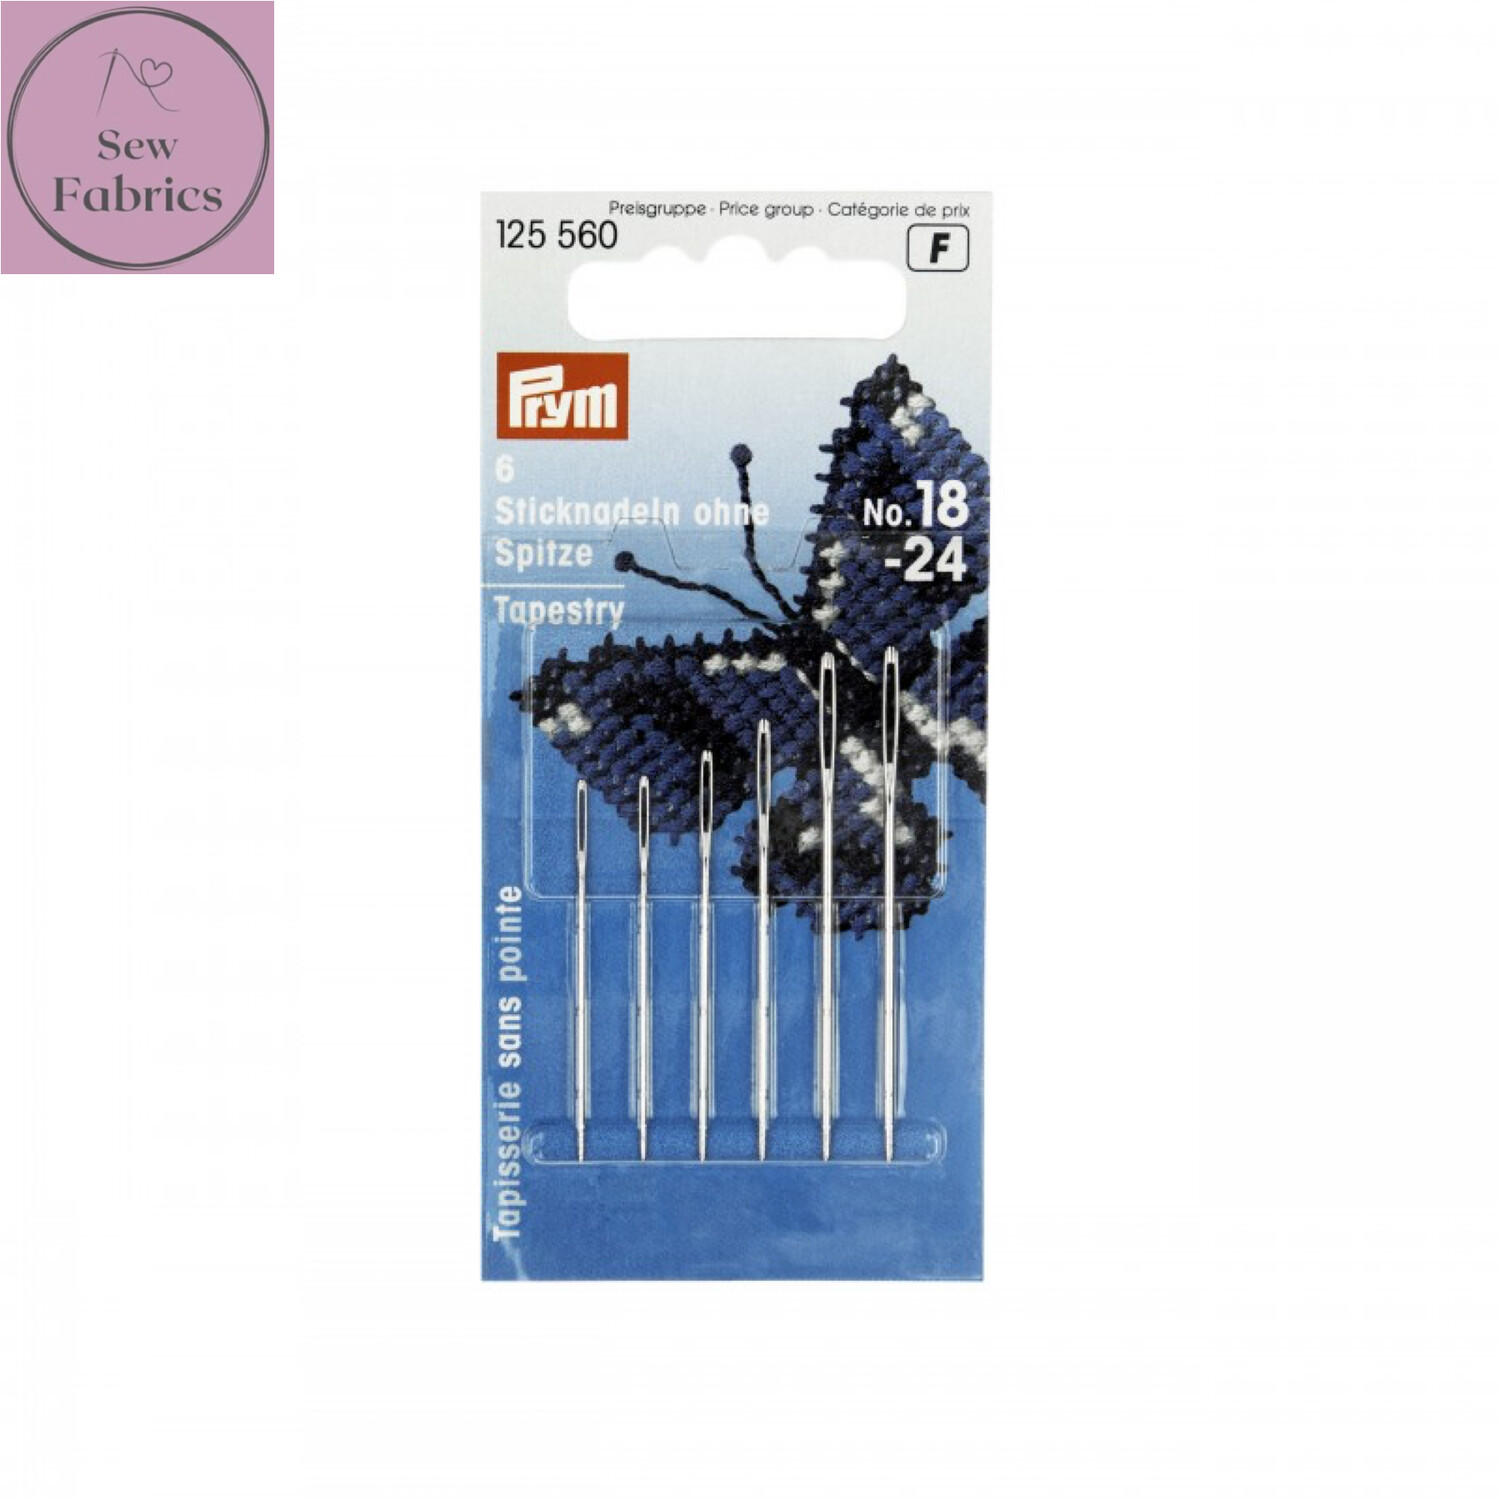 Prym Embroidery Assorted Needles Tapestry blunt point No. 18-24 silver colour with gold eye